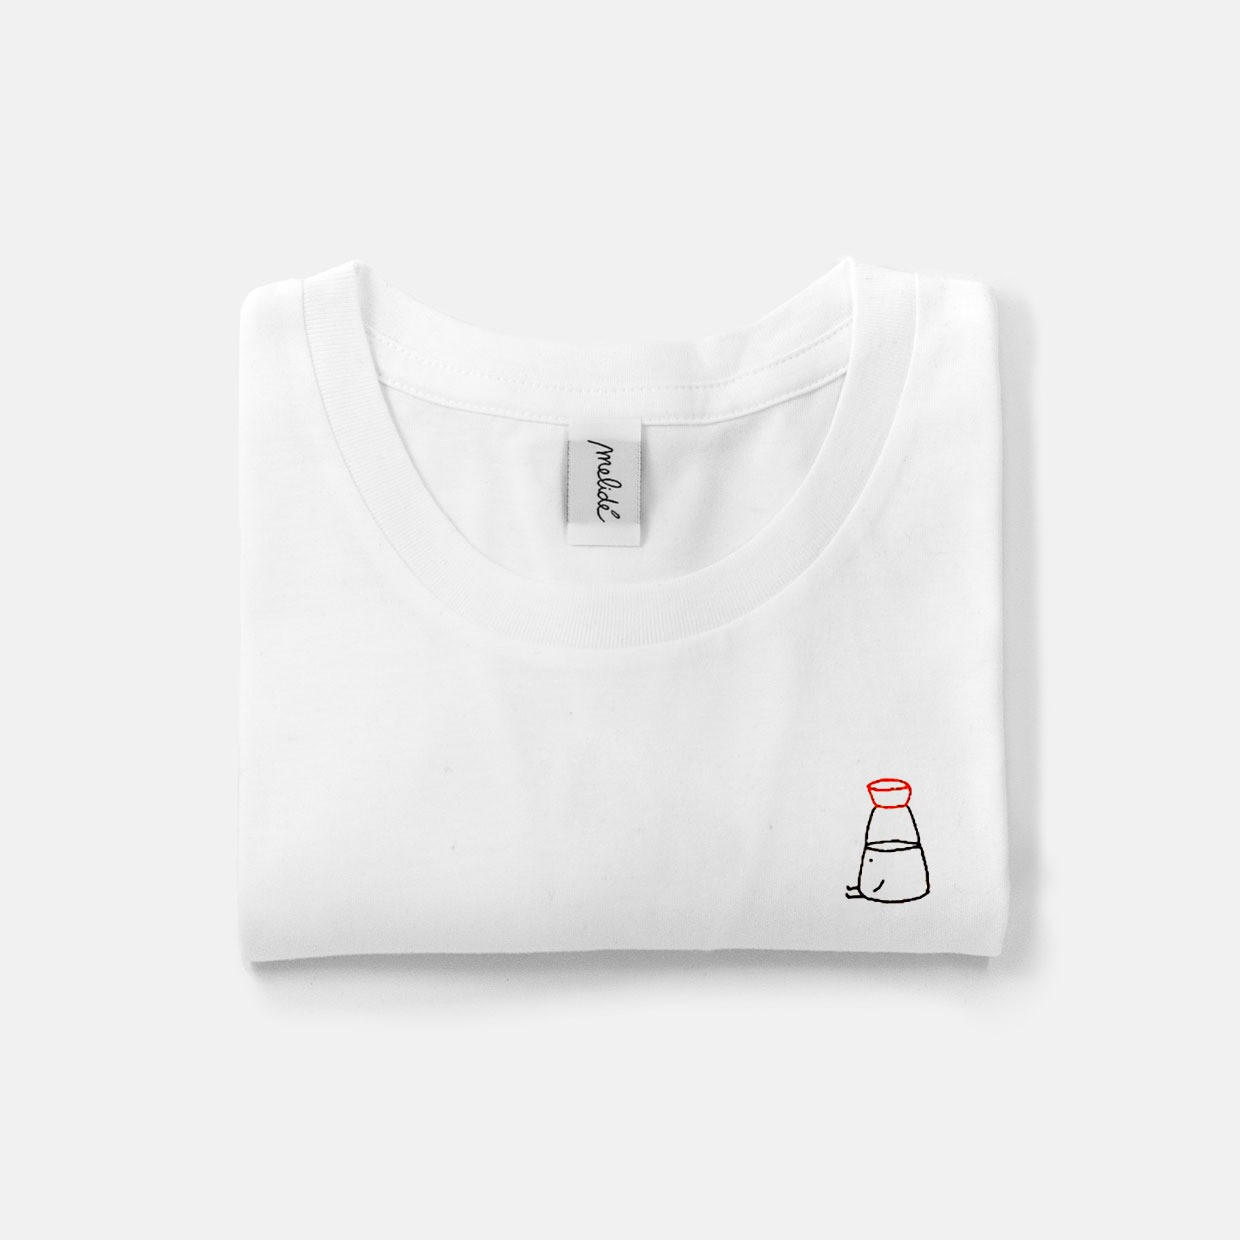 The SOY SAUCE ultimate tee